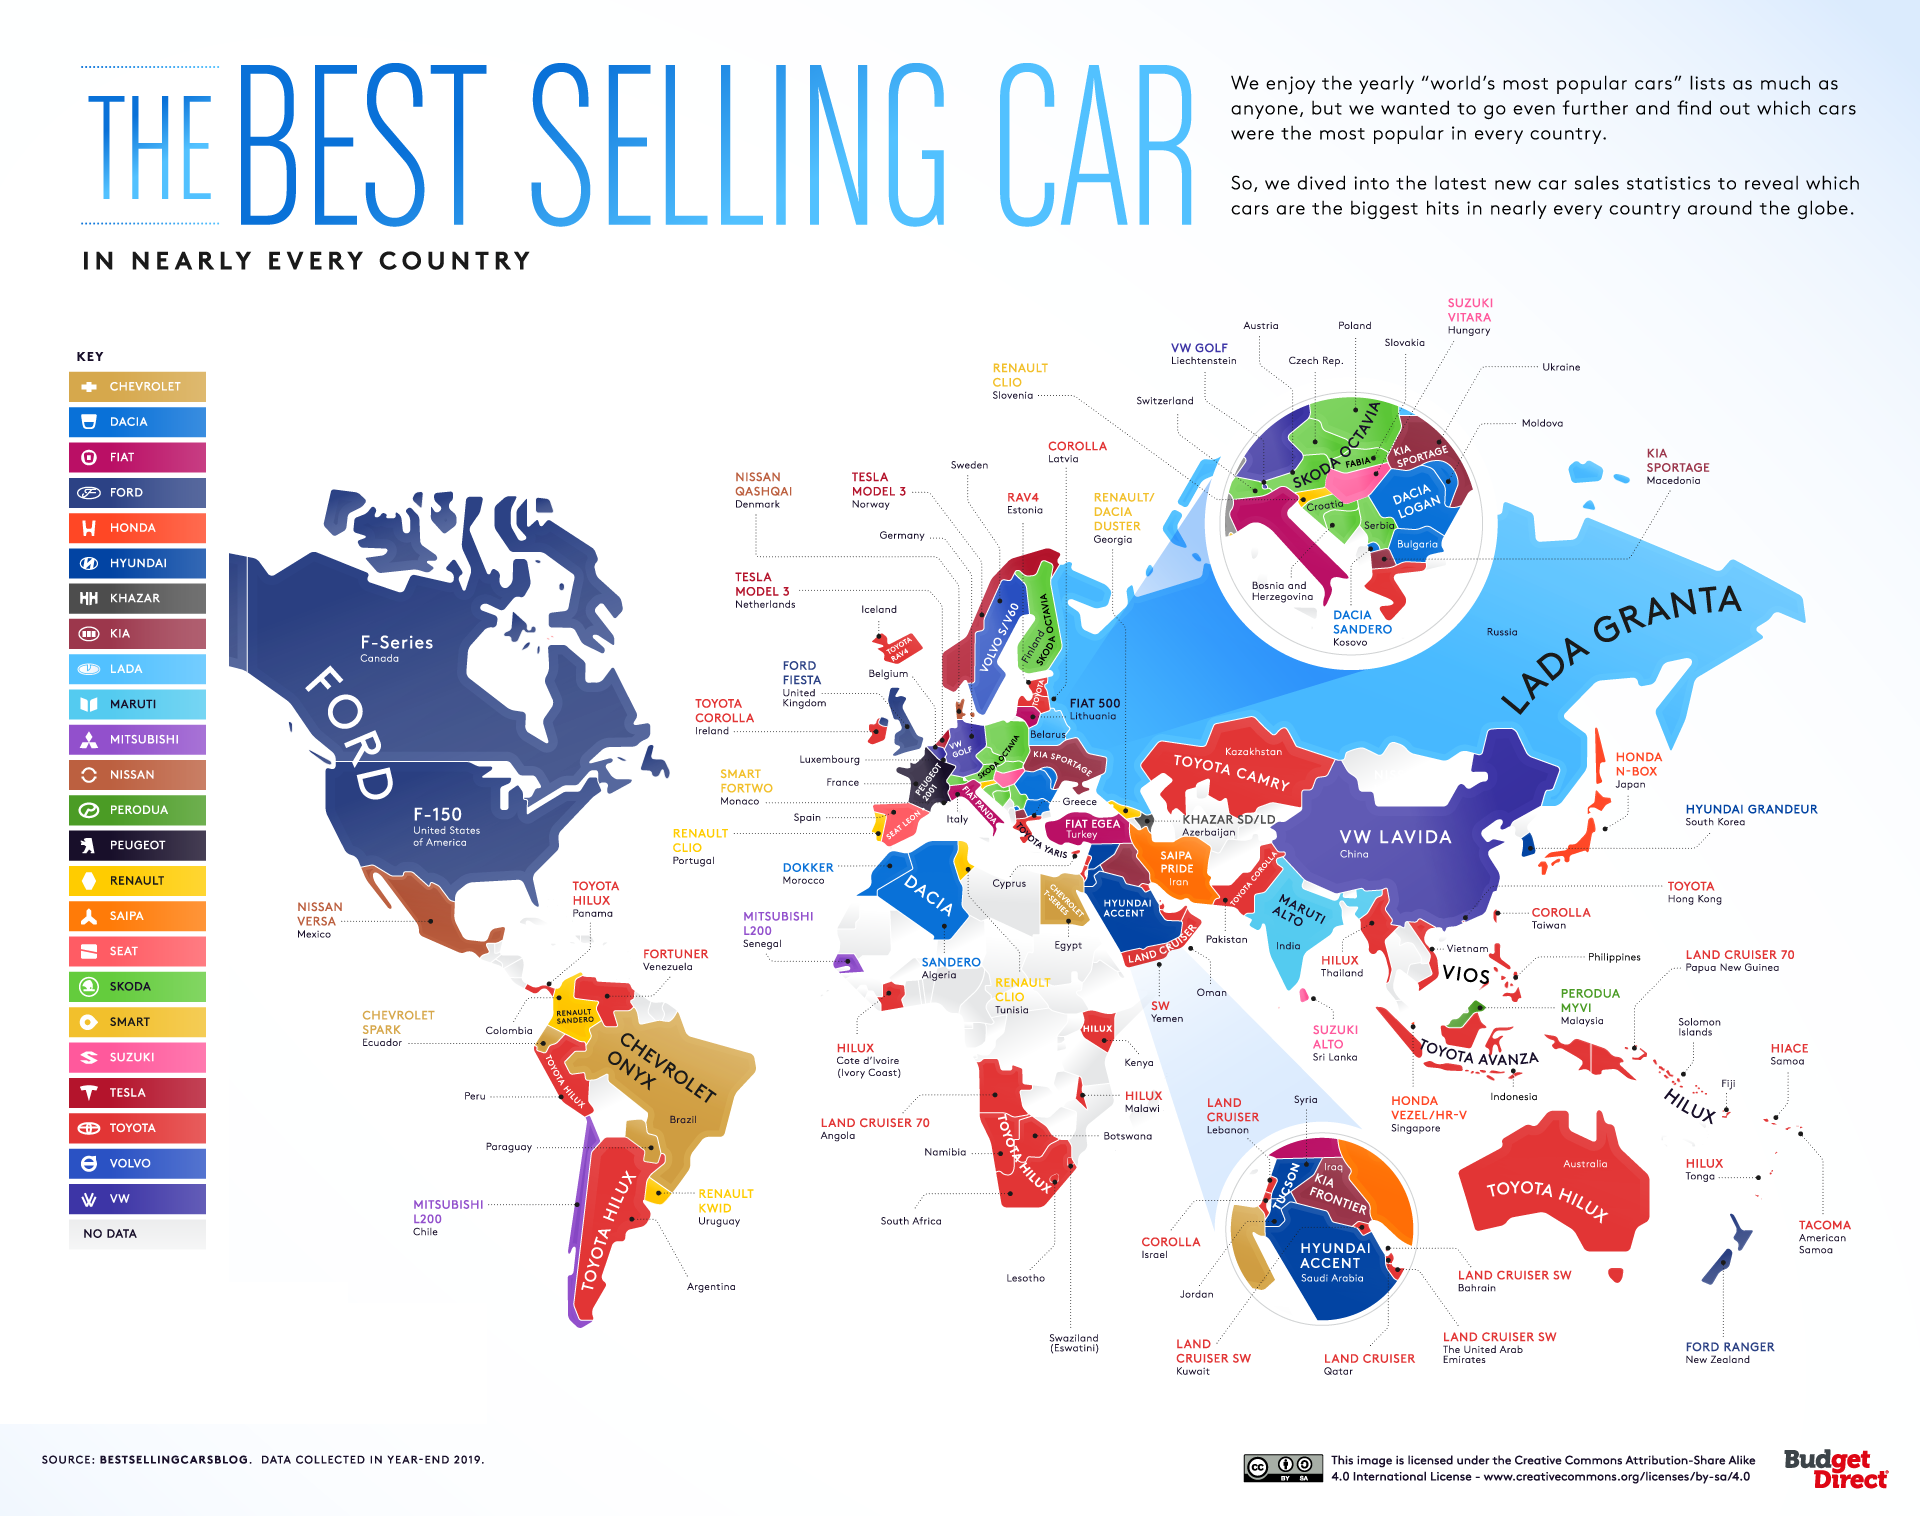 The Best Selling Car in Nearly Every Country